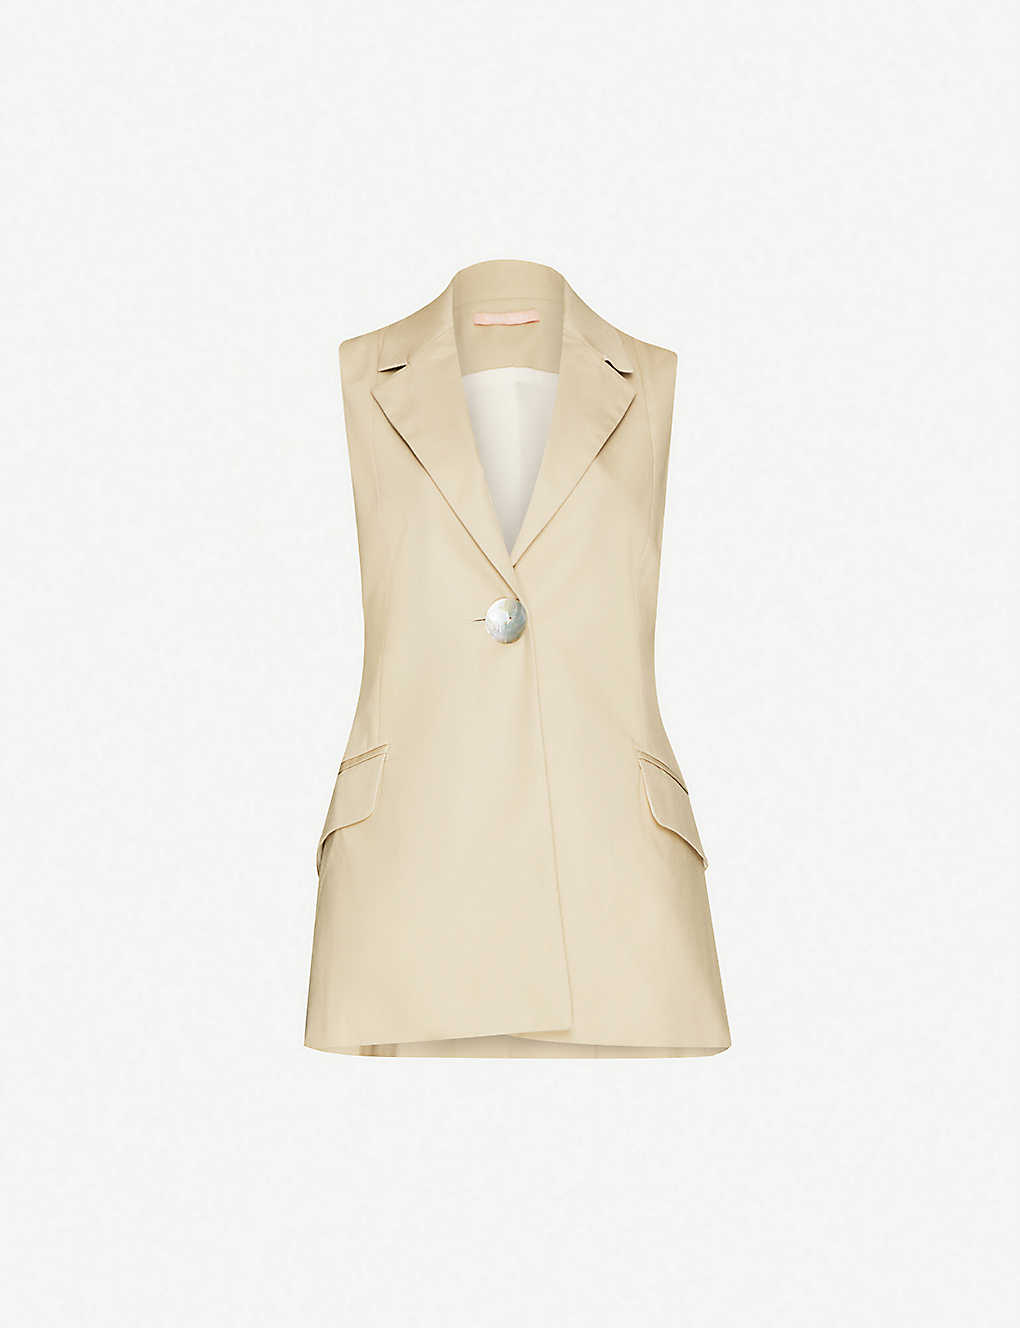 MAGGIE MARILYN: Together We Are One sleeveless cotton jacket